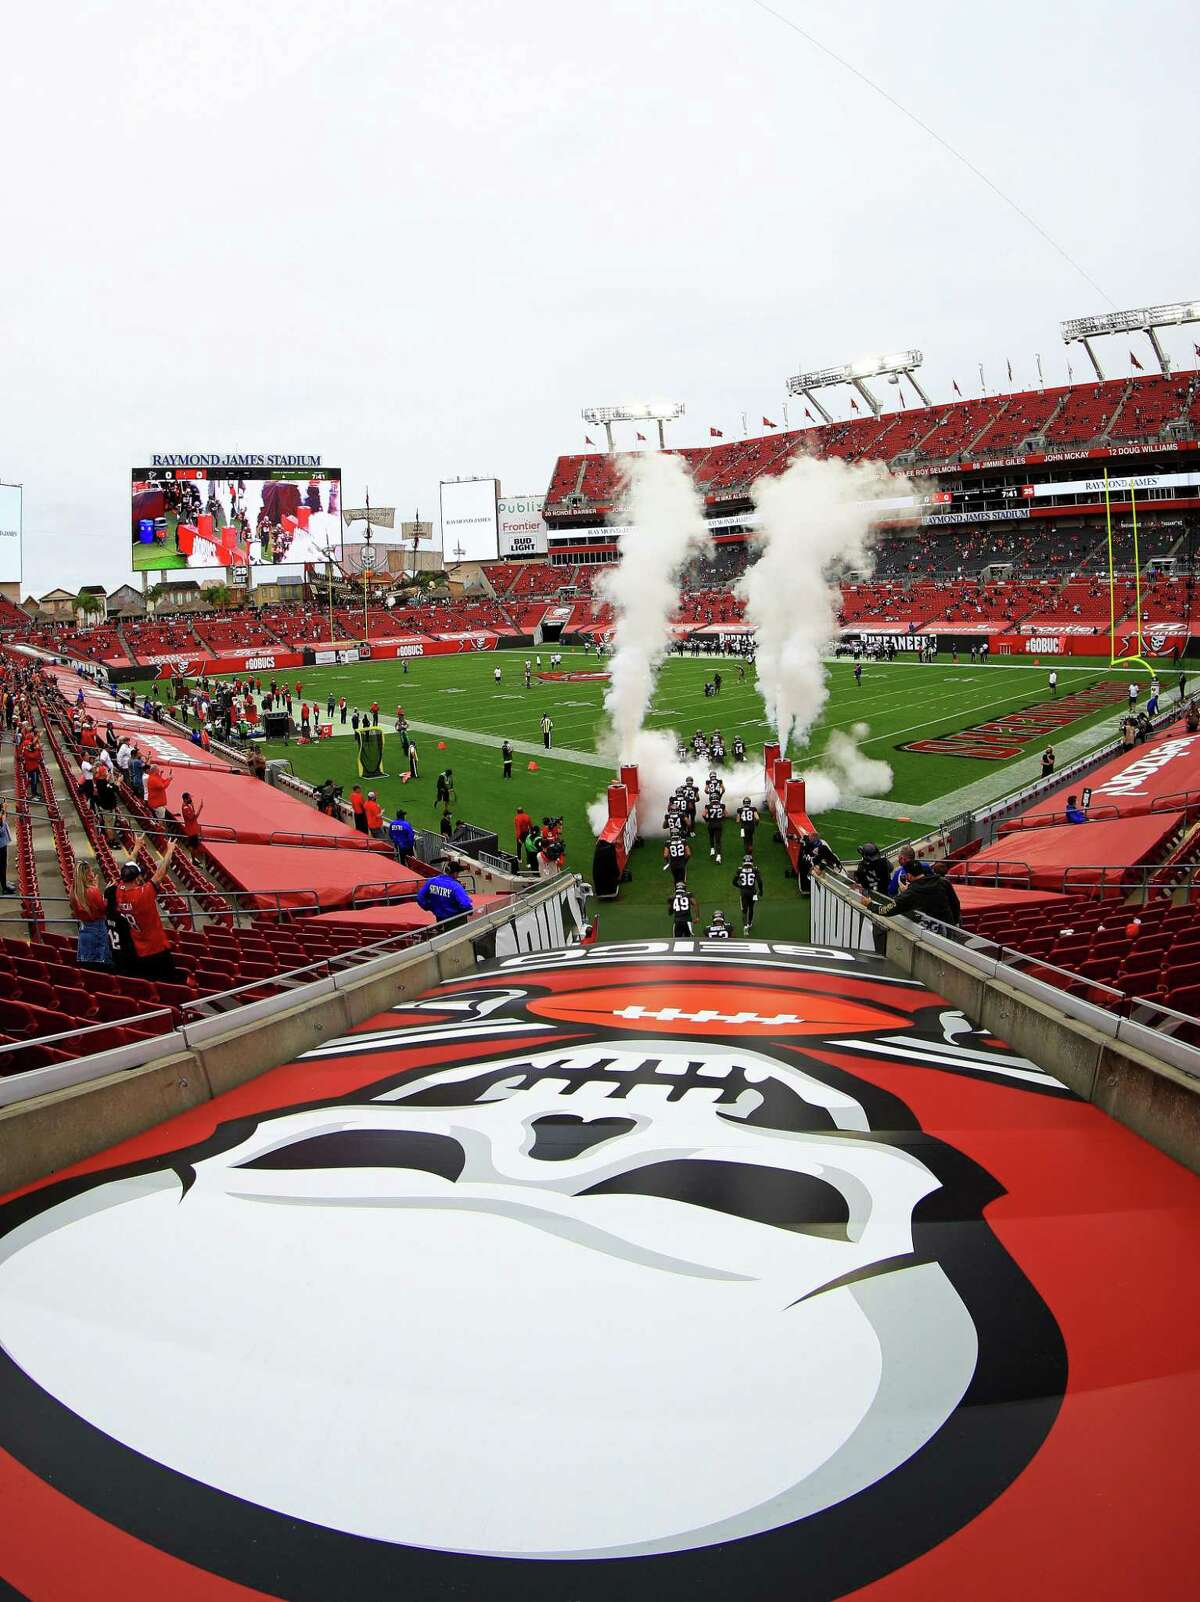 Raymond James Stadium in Tampa, Fla., will host WWE's WrestleMania 37 on April 10 and April, 11, 2021.